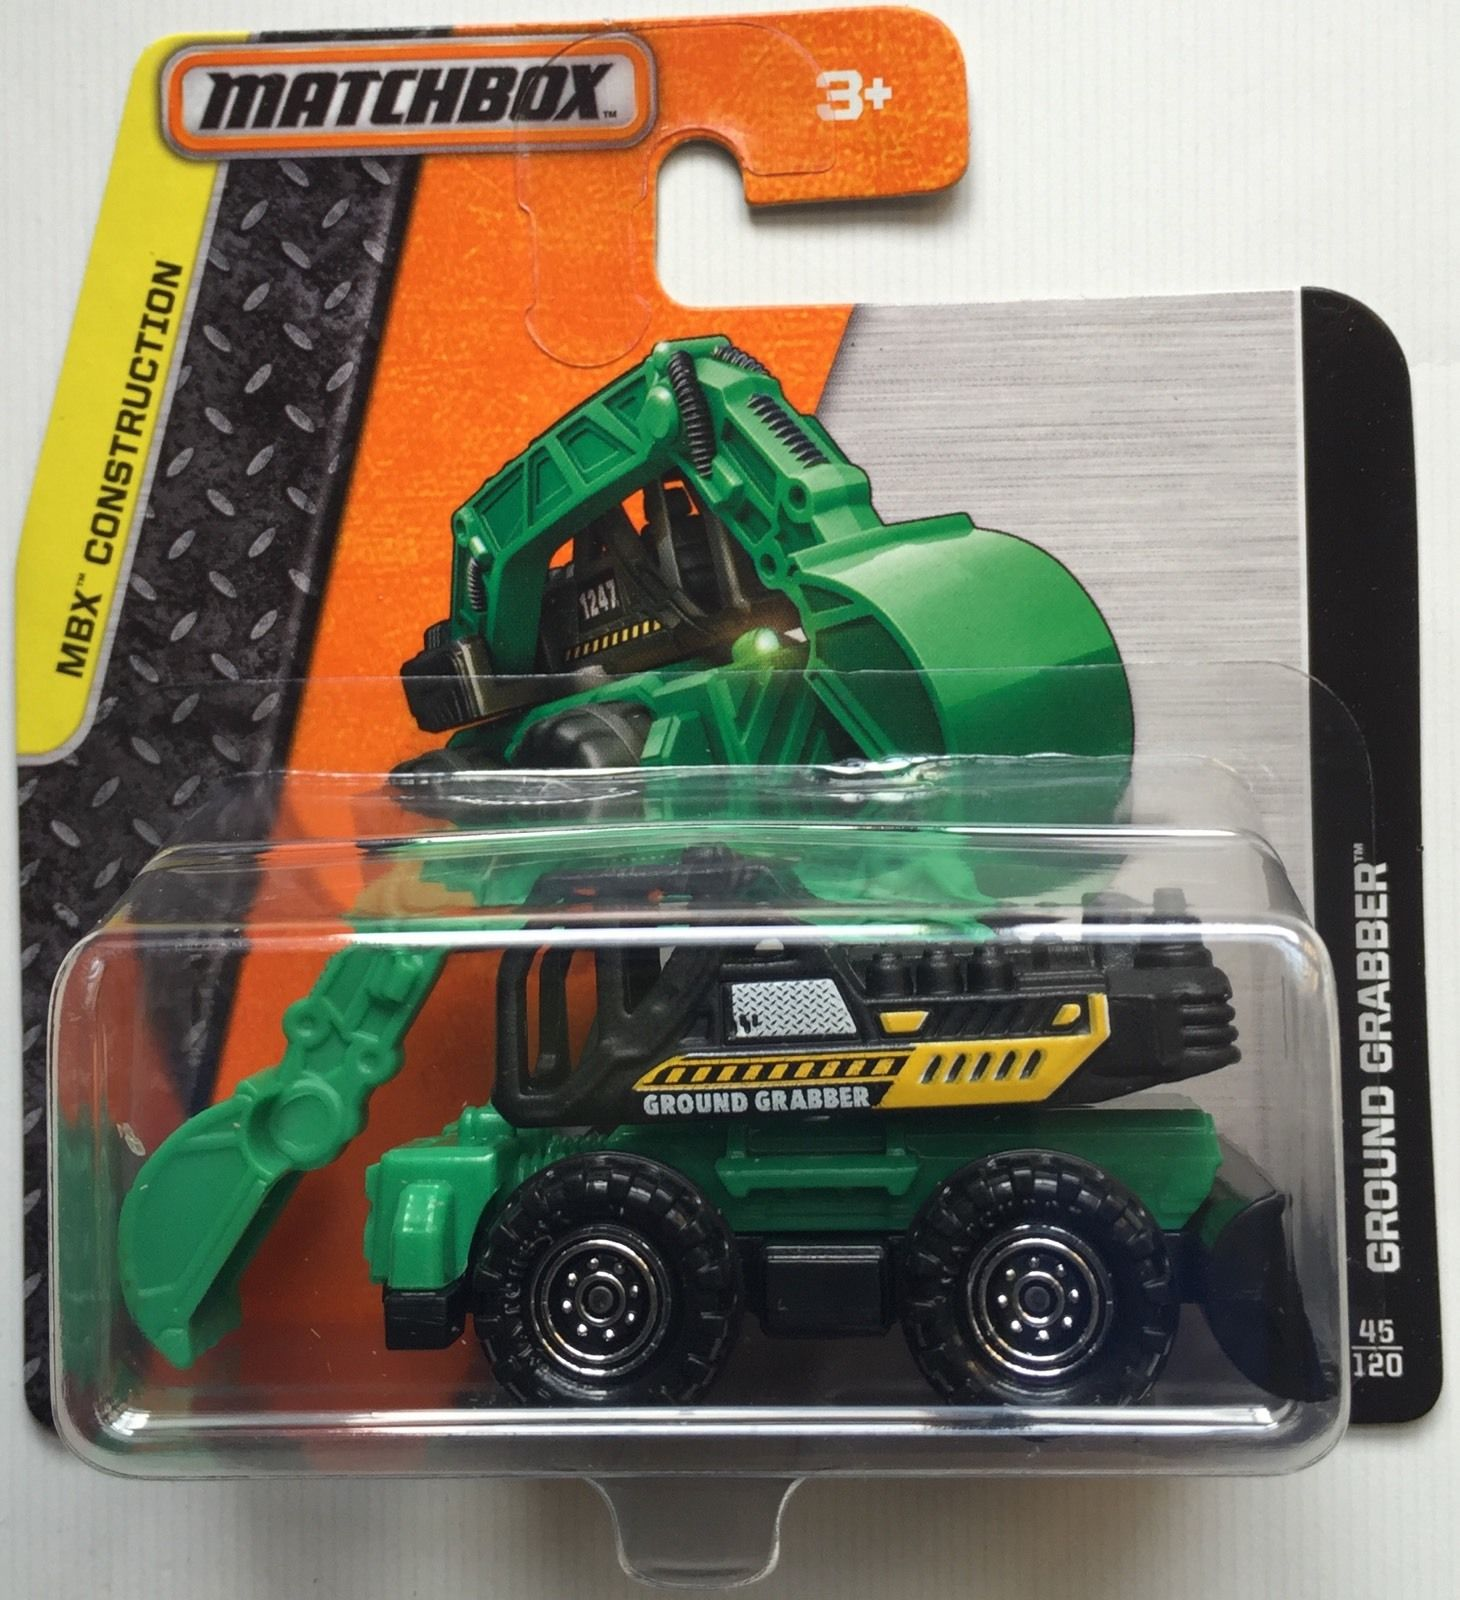 Matchbox MBX Construction Ground Grabber 45/120 Short Card